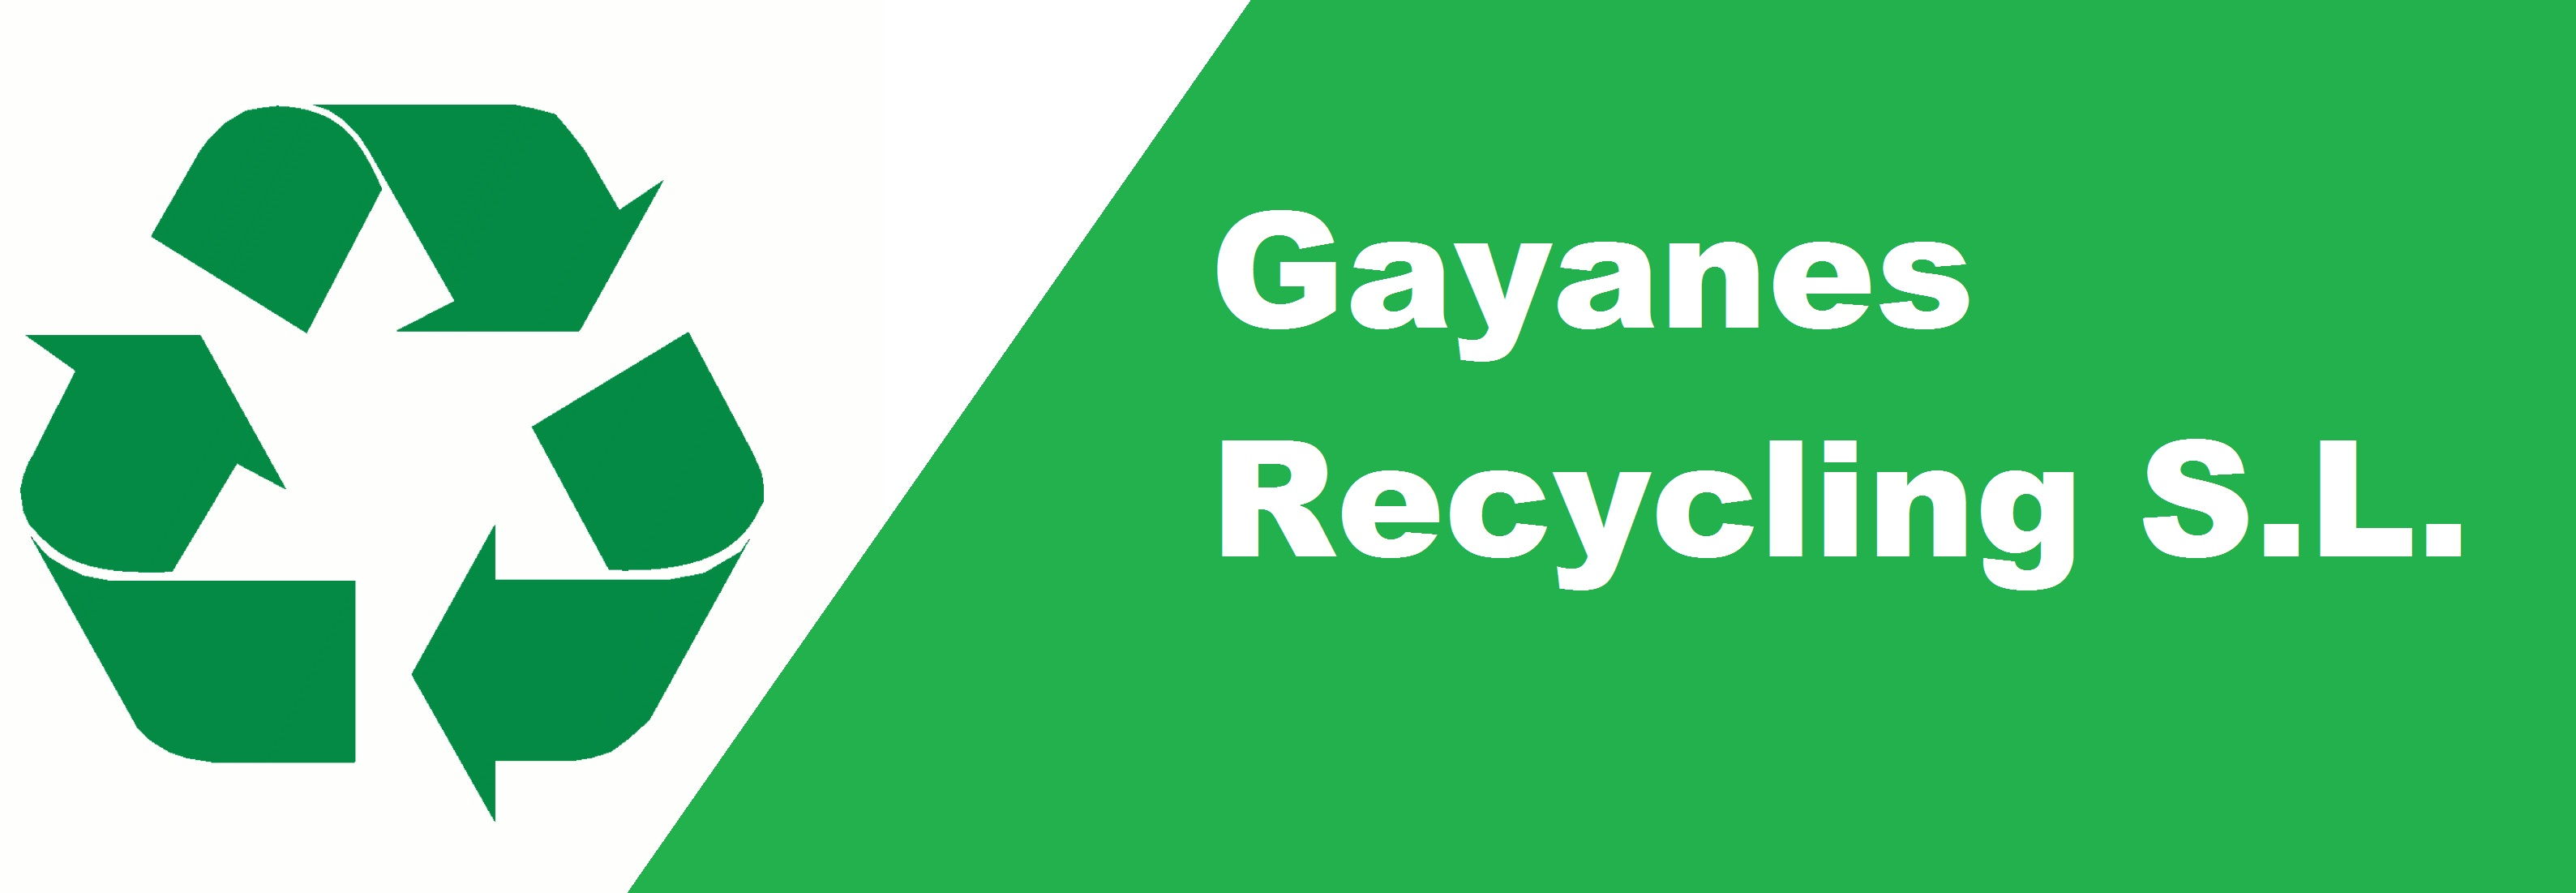 Gayanes Recycling